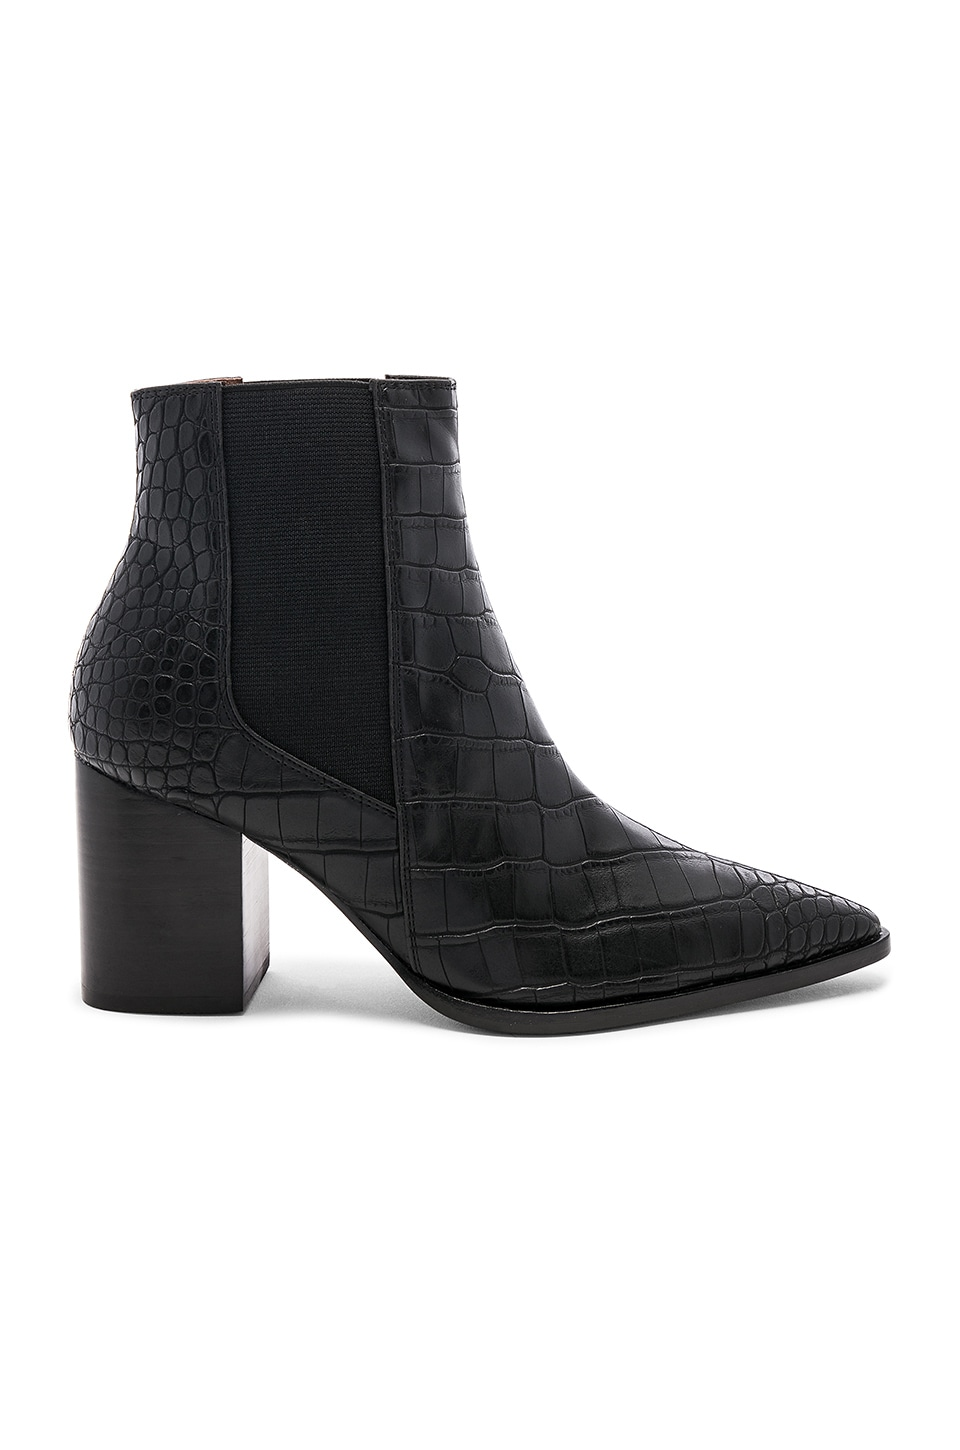 RAYE x House of Harlow 1960 Nick Bootie in Black